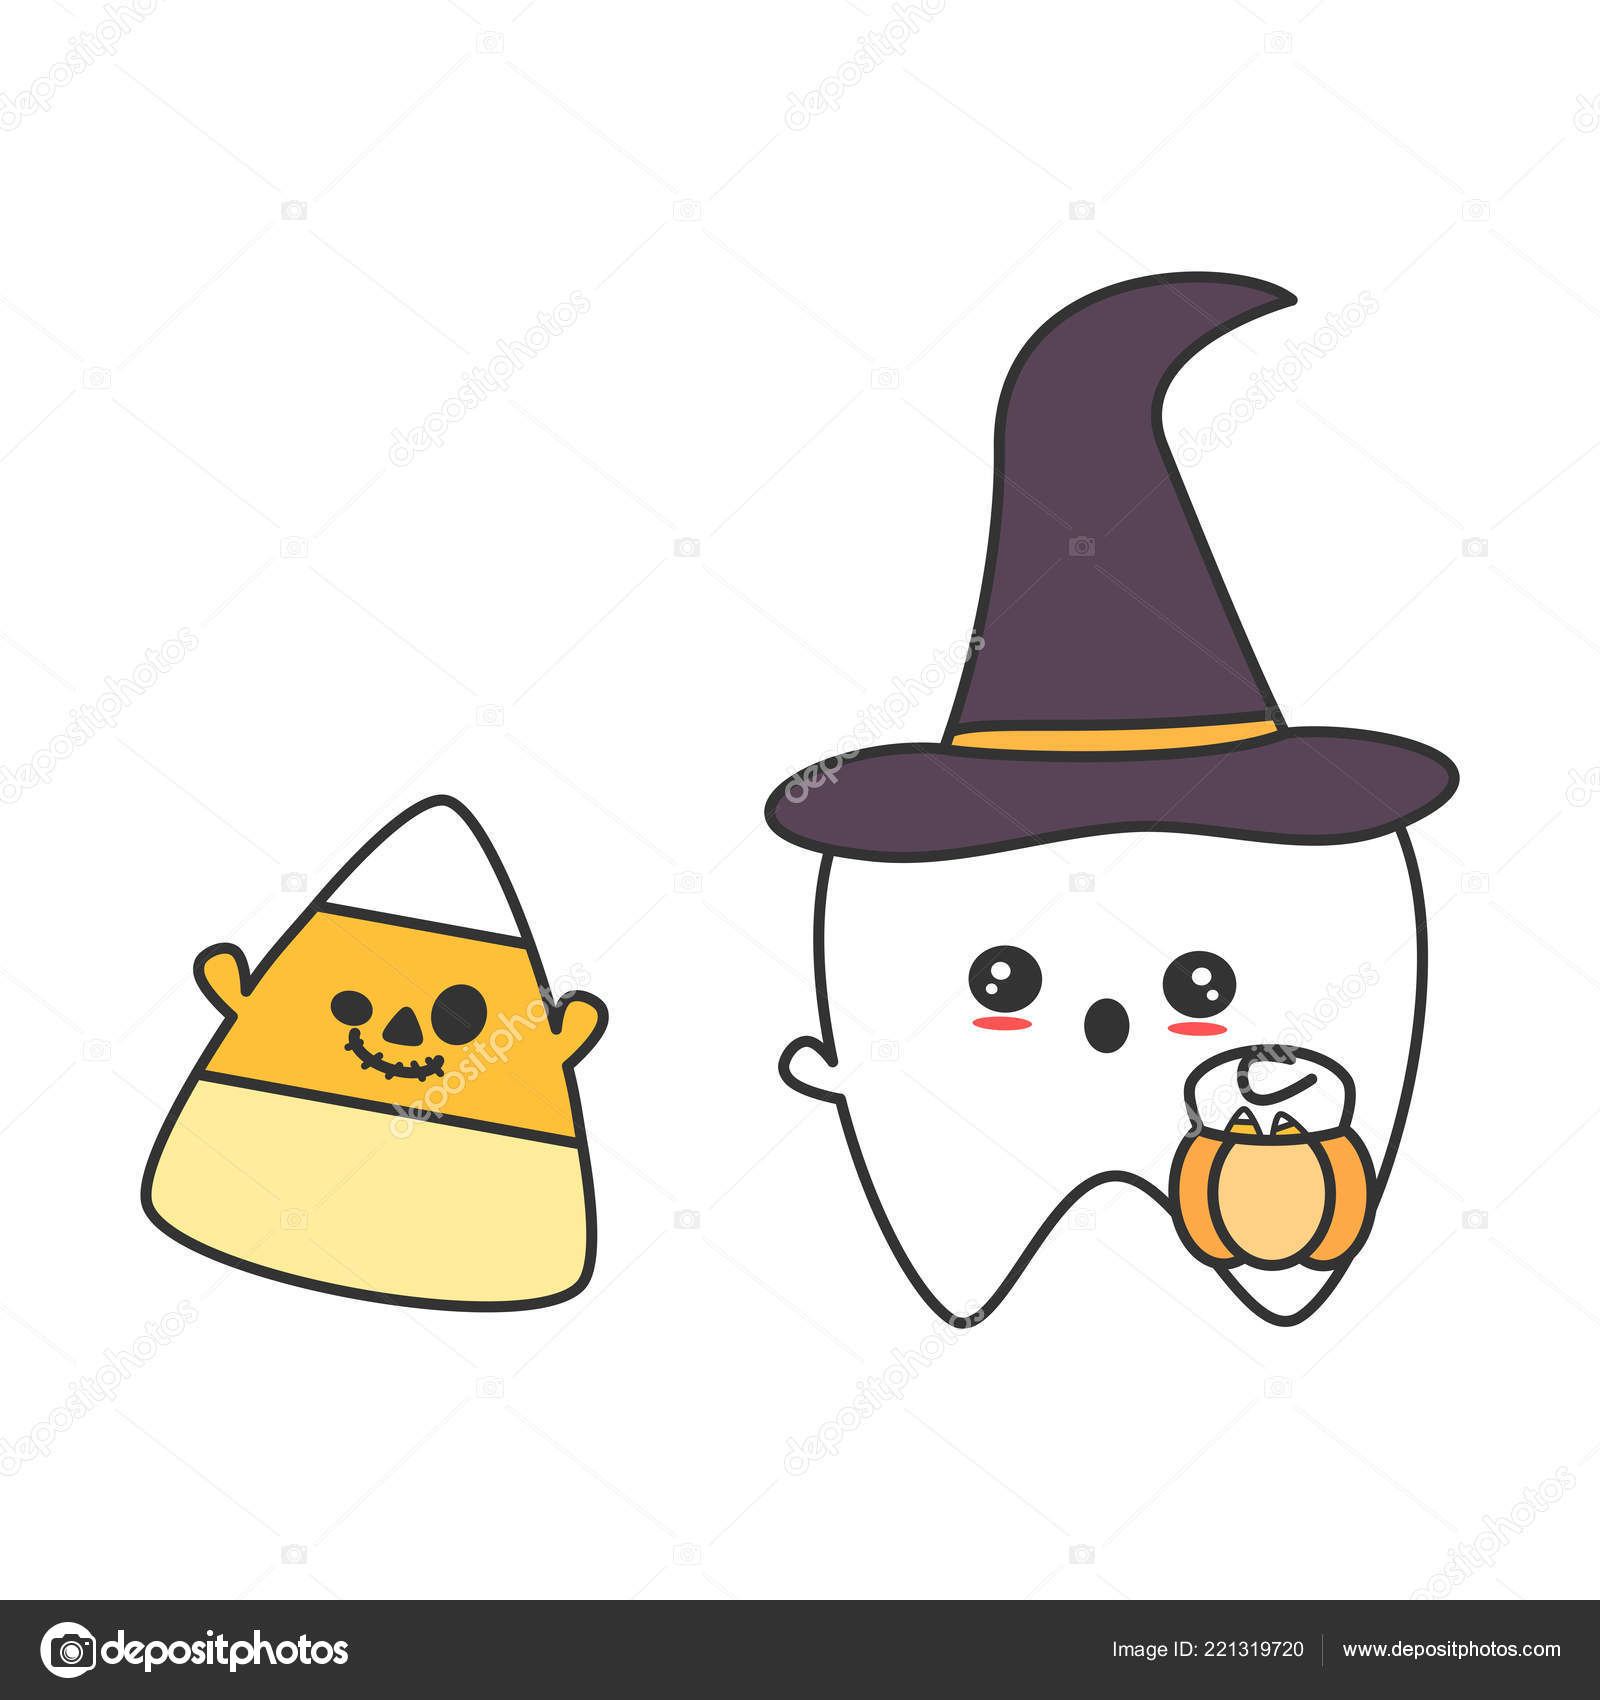 Cute Cartoon Tooth Witch Hat Candy Corn Funny Halloween Vector Stock Vector C Alicev1978 221319720